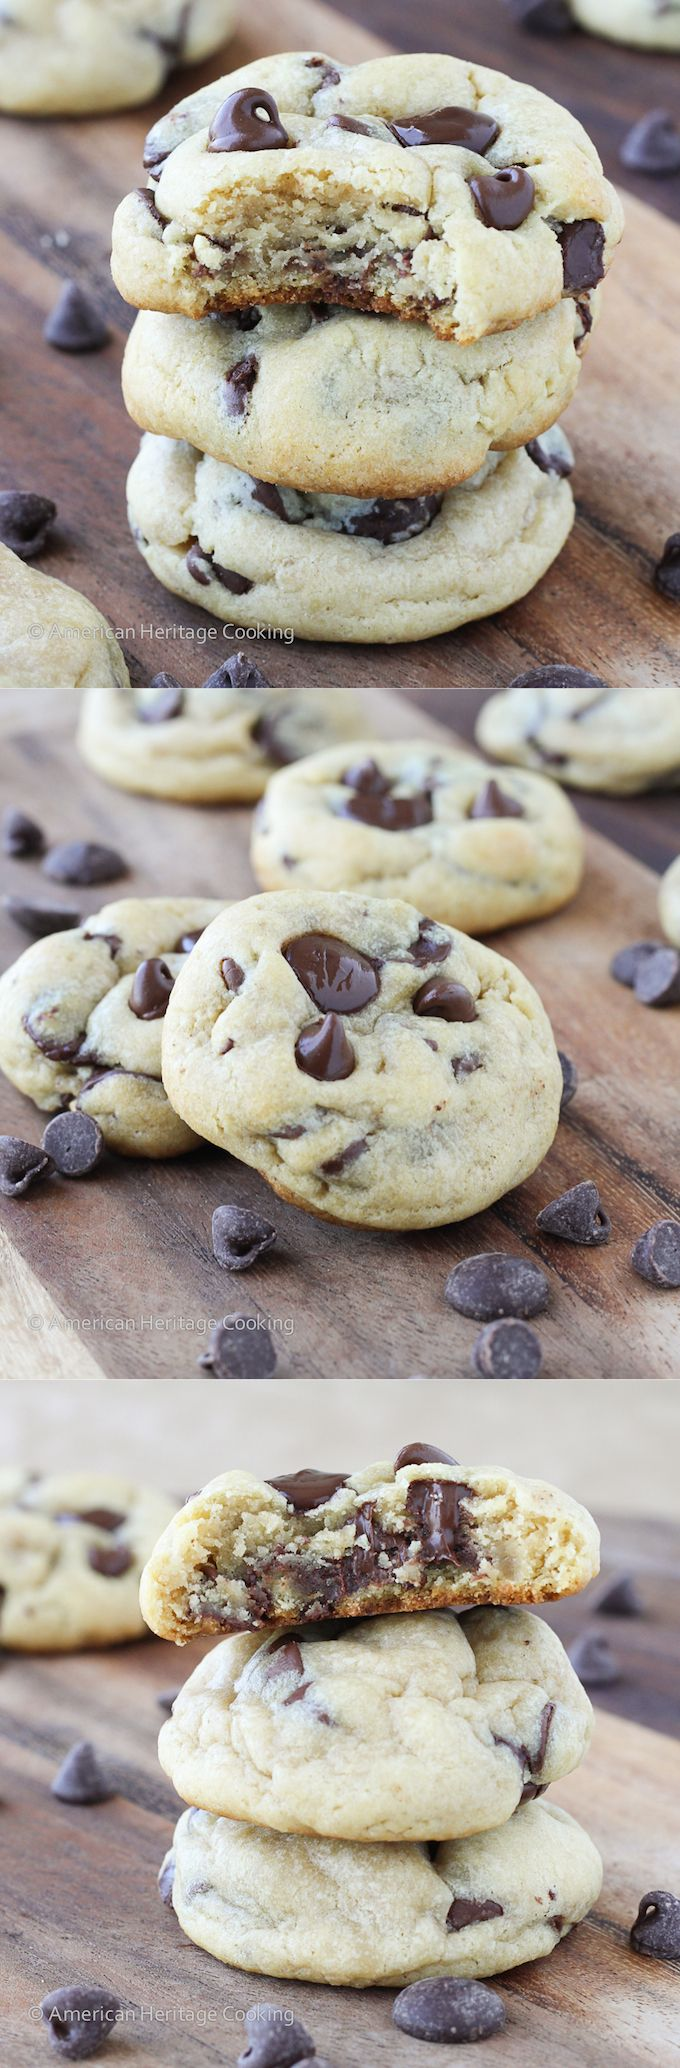 Cream Cheese Chocolate Chip Cookies   Soft & Chewy! No one will believe they are homemade! They taste just like Soft Batch!